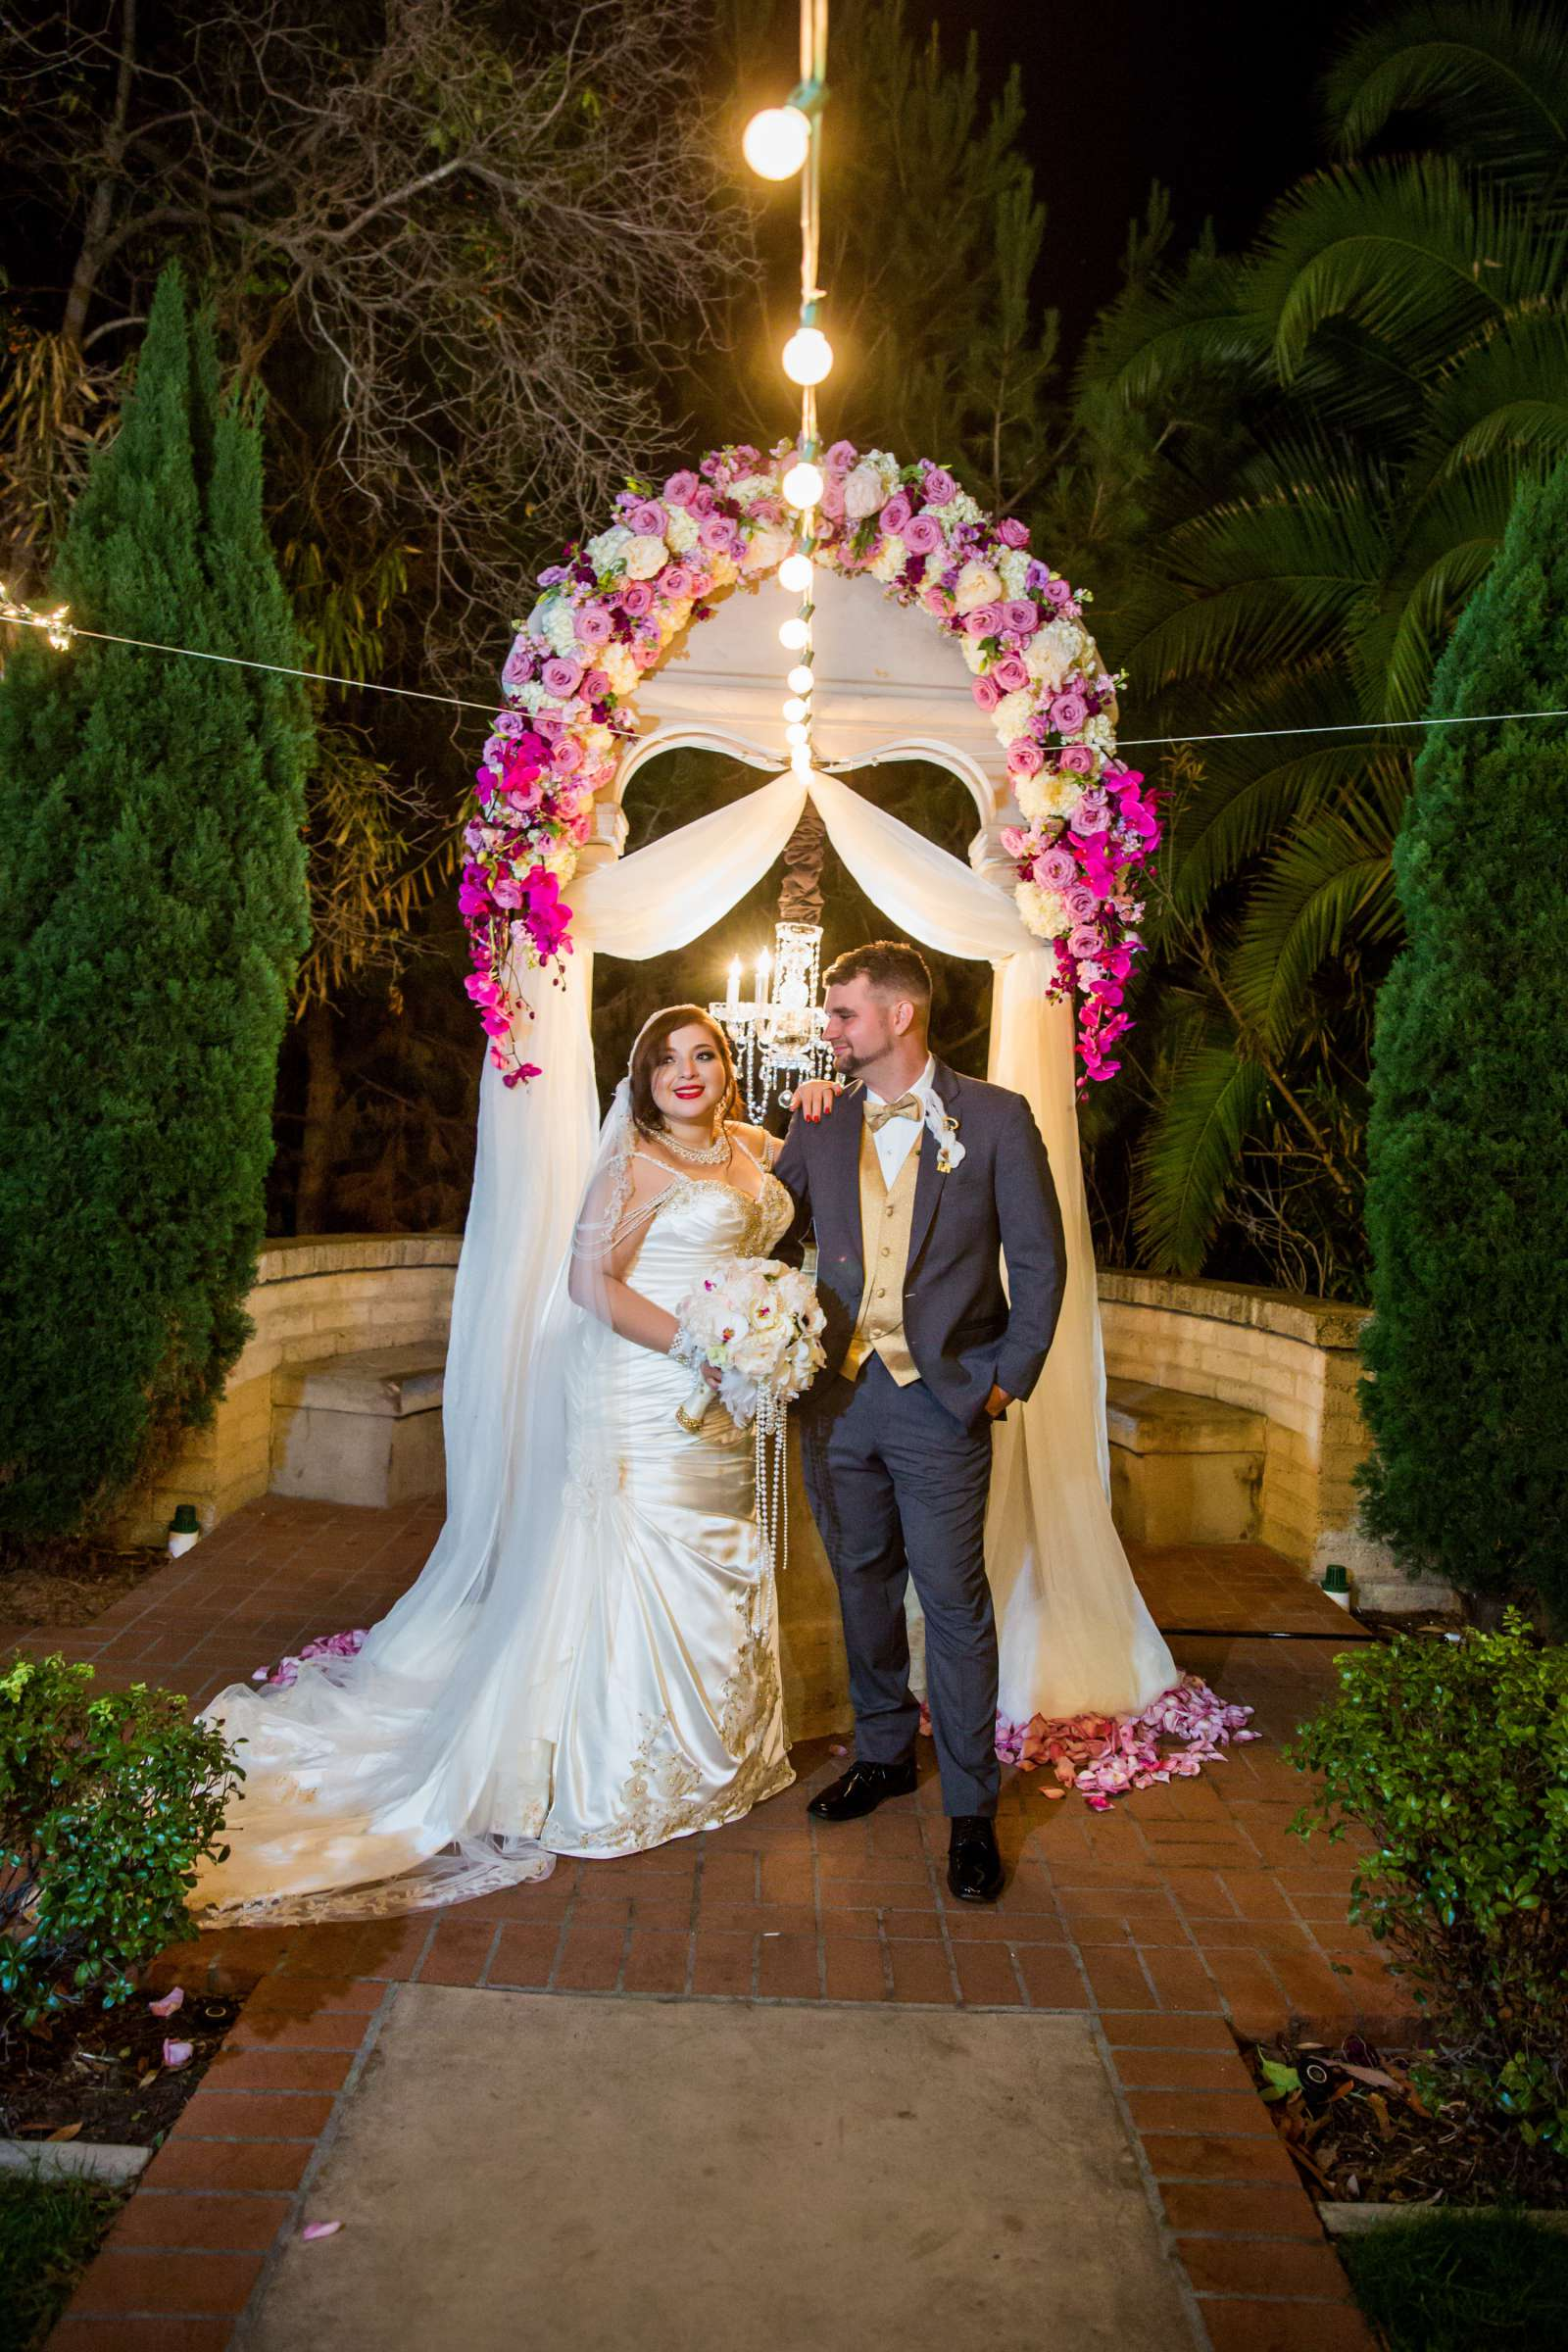 The Prado Wedding coordinated by Breezy Day Weddings, Aalis and Michael Wedding Photo #105 by True Photography